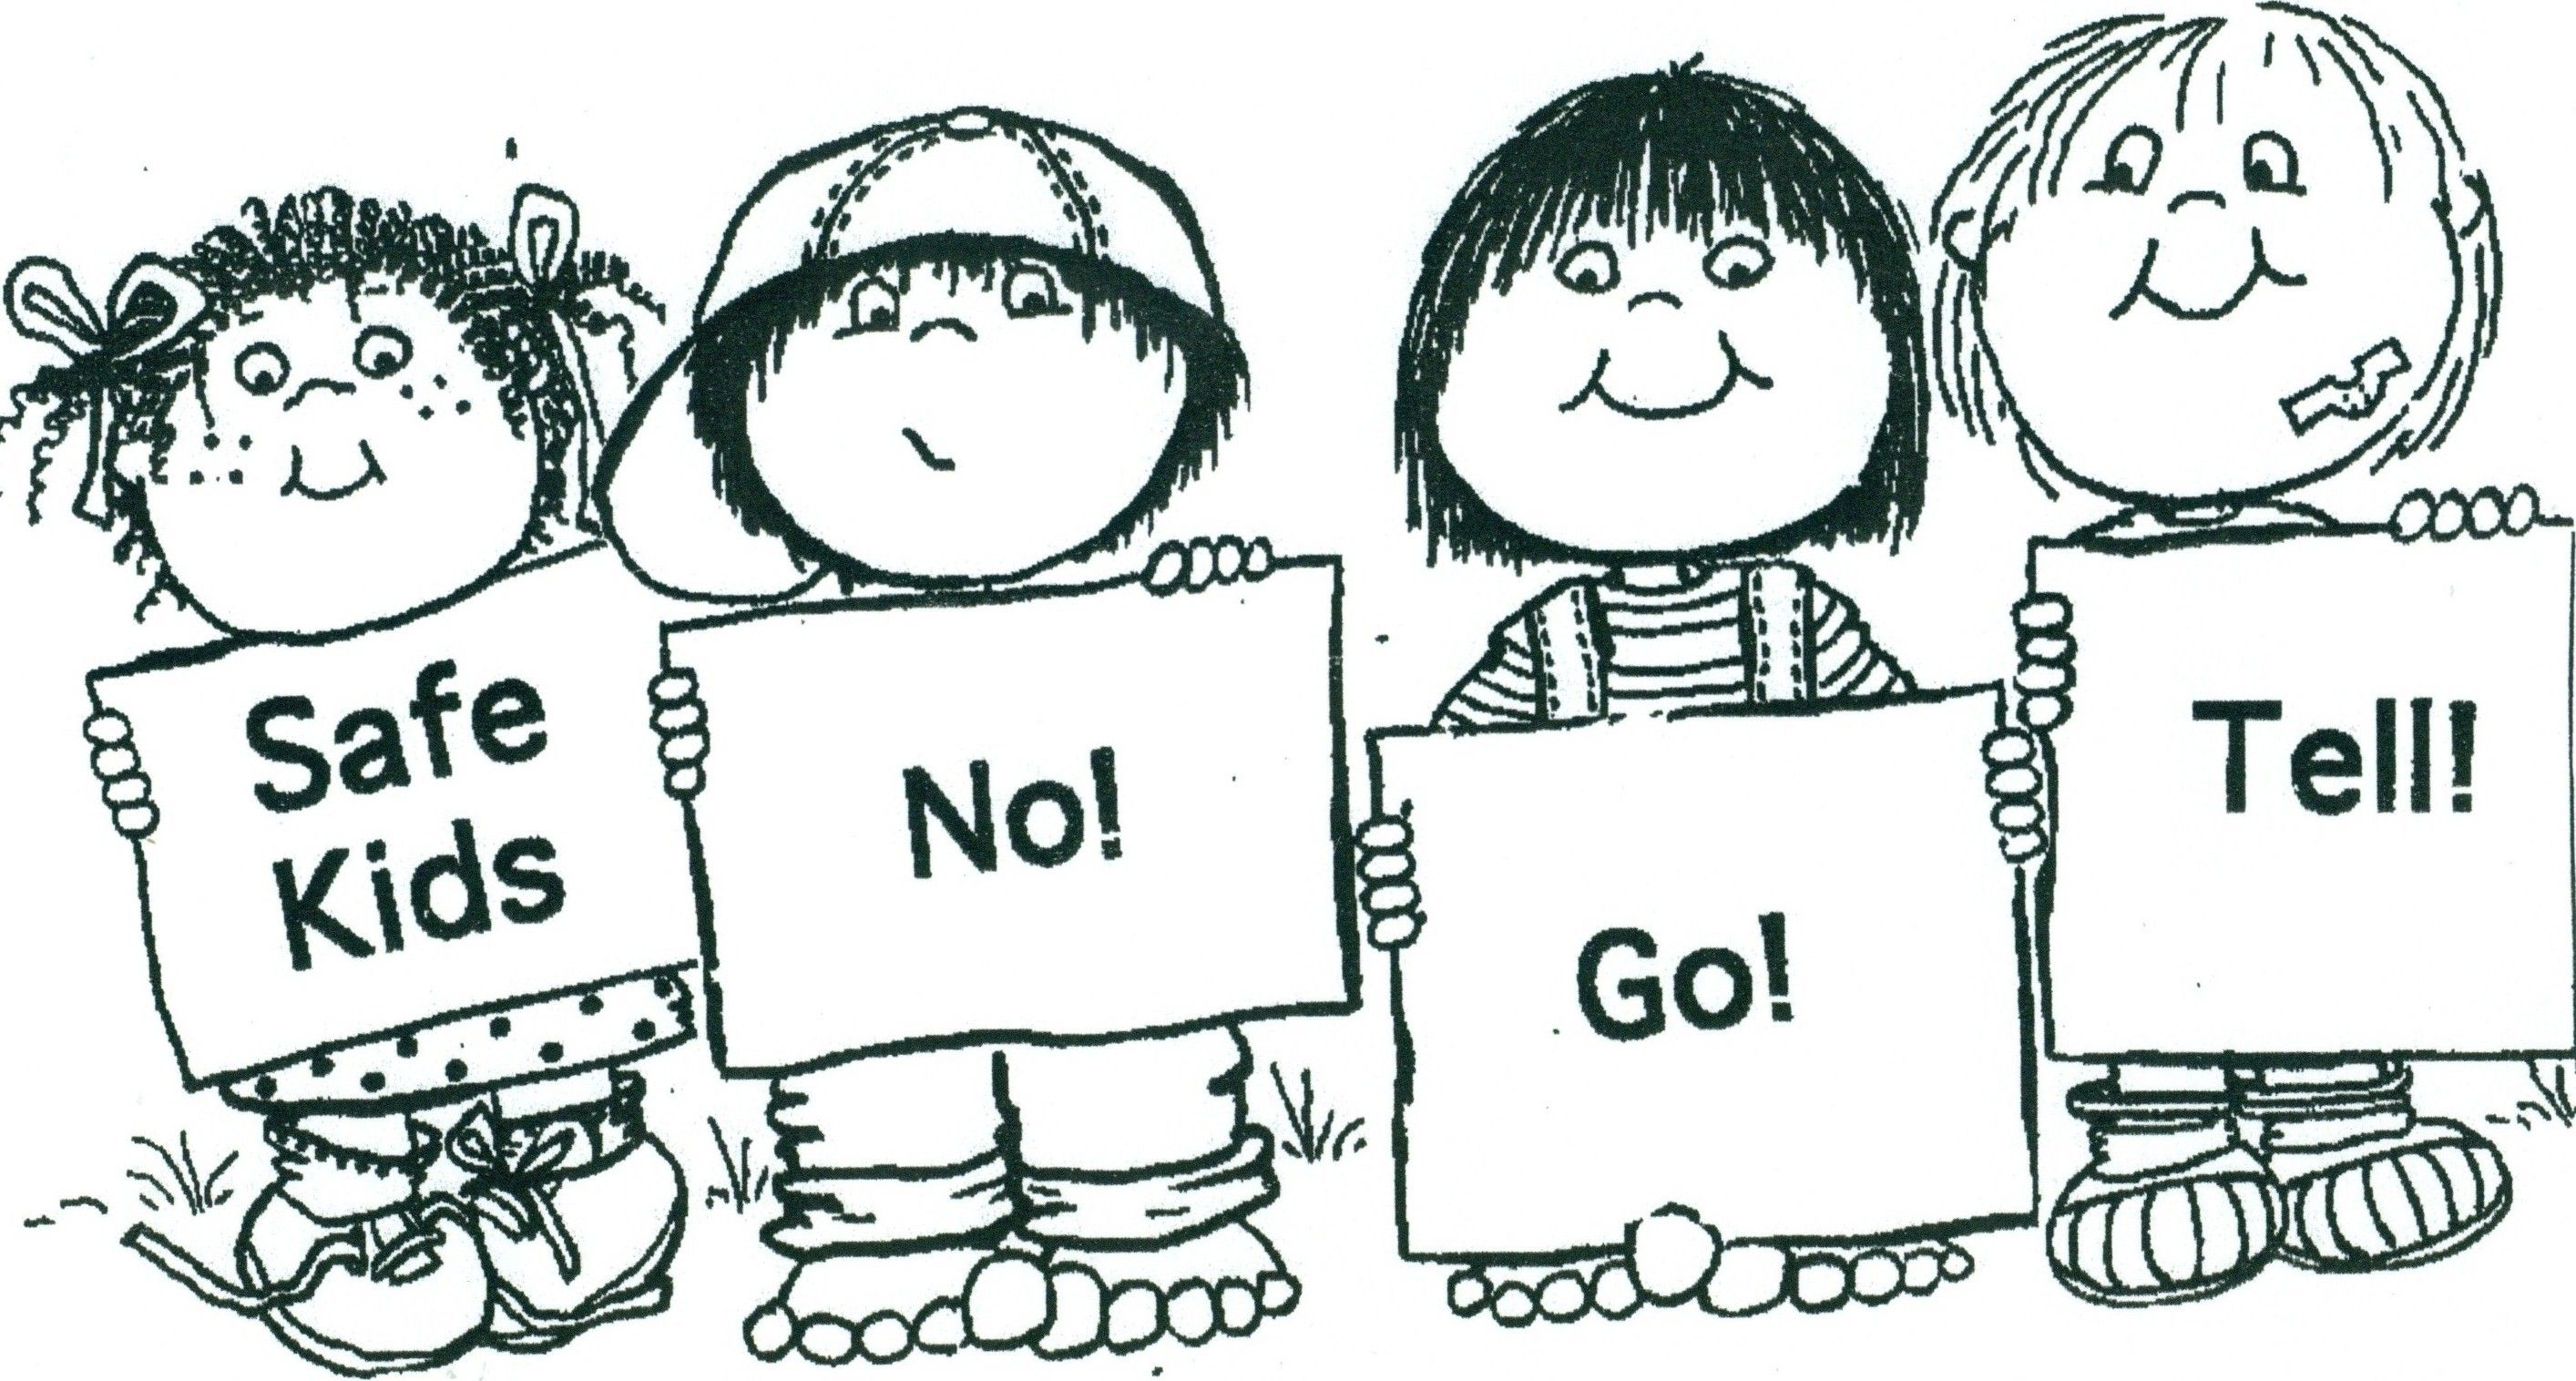 Say No, Go, and Tell! : Teachsafety